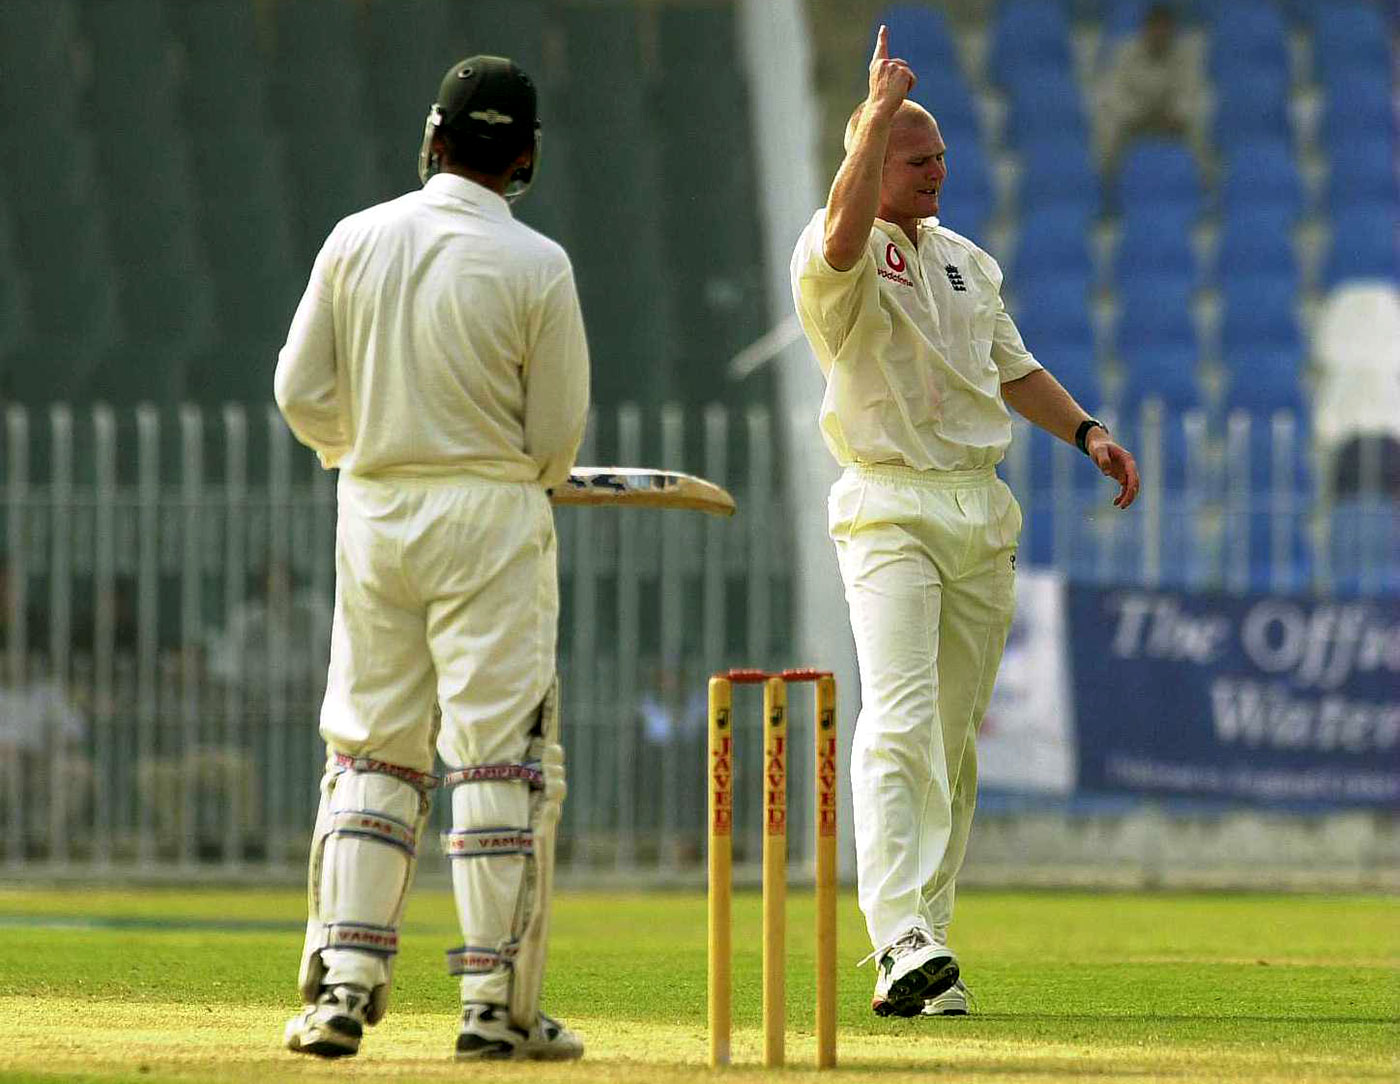 Matthew Hoggard dismisses Wasim for 12 in a tour game in Rawalpindi in November 2000. In the 2000-01 Quaid-e-Azam domestic season, Wasim was 12th on the run-getters list, having made 300 fewer than leading scorer Misbah-ul-Haq